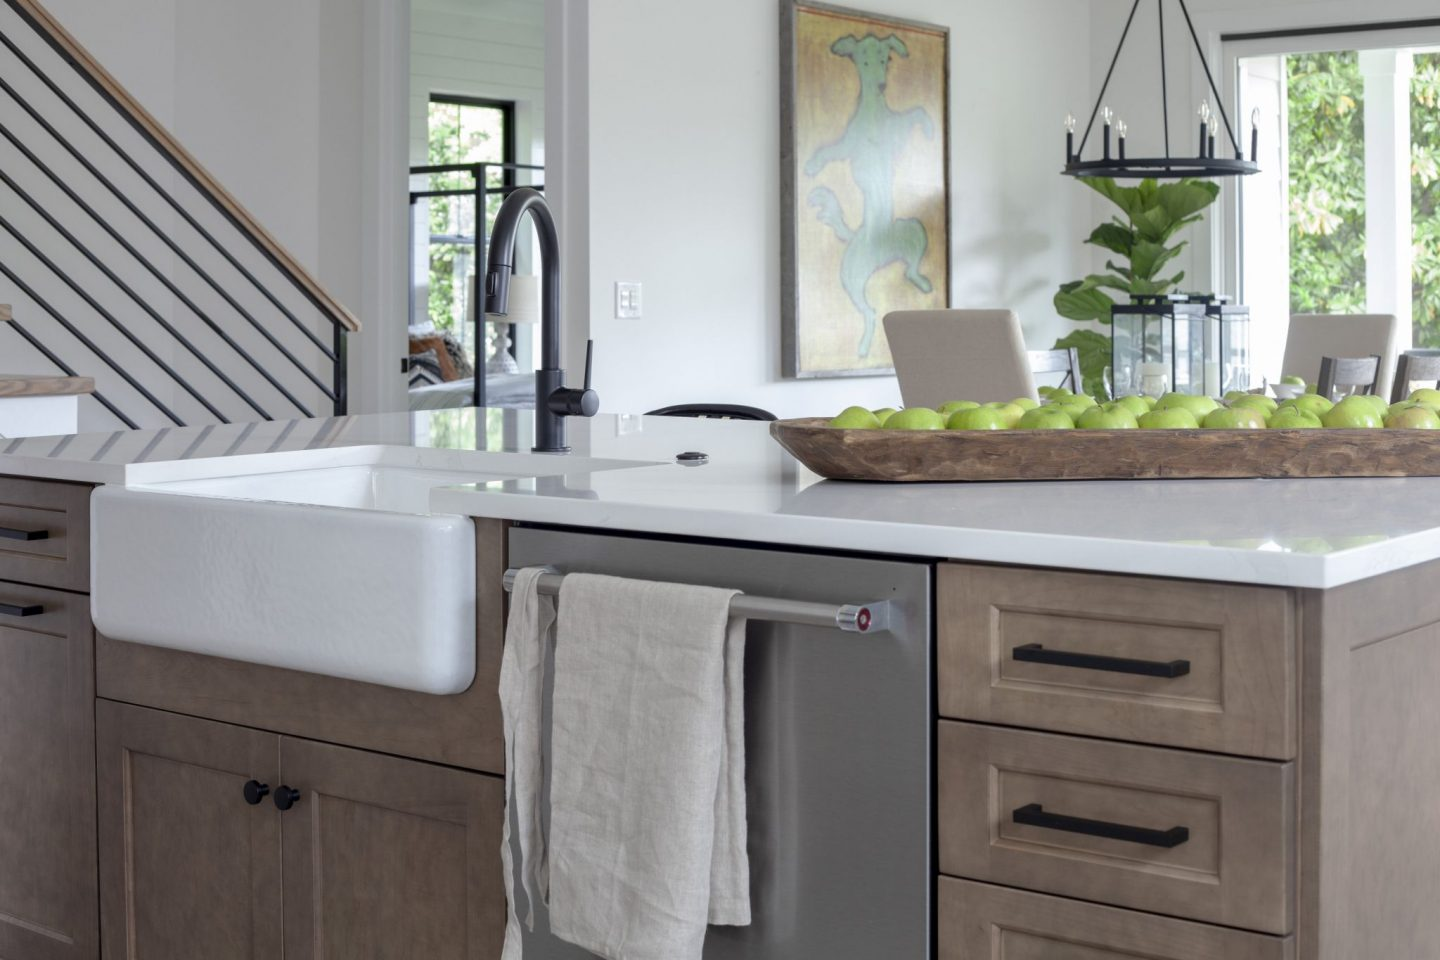 Modern Farmhouse - Farmhouse Sink - Luxury Homes - Schwaiger Realty Group